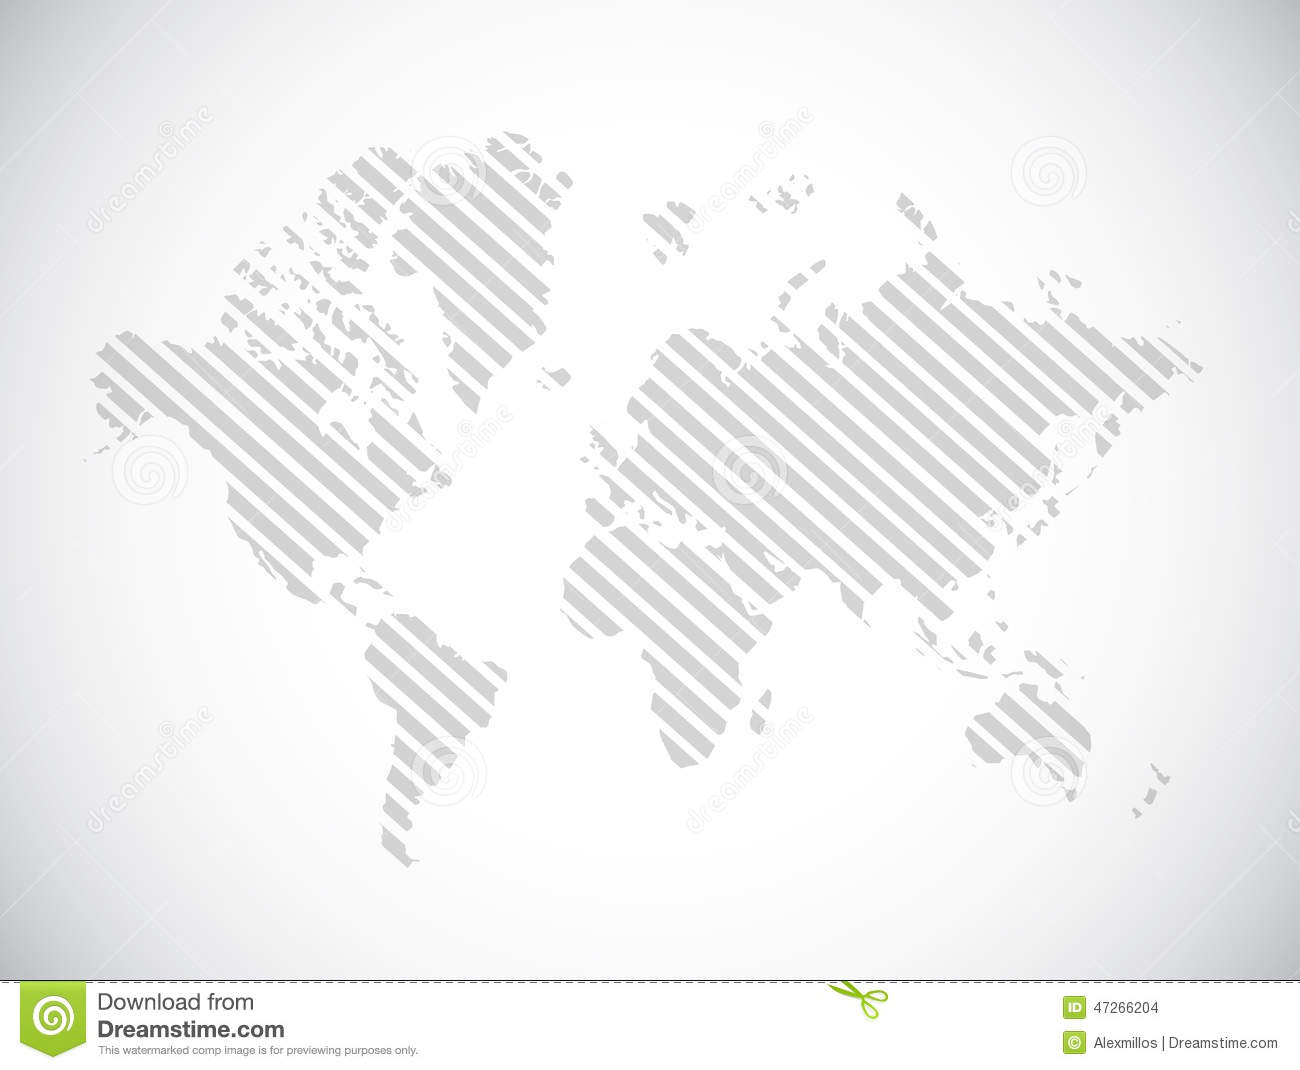 Grey world map illustration stock illustrations 7190 grey world grey world map illustration stock illustrations 7190 grey world map illustration stock illustrations vectors clipart dreamstime gumiabroncs Choice Image